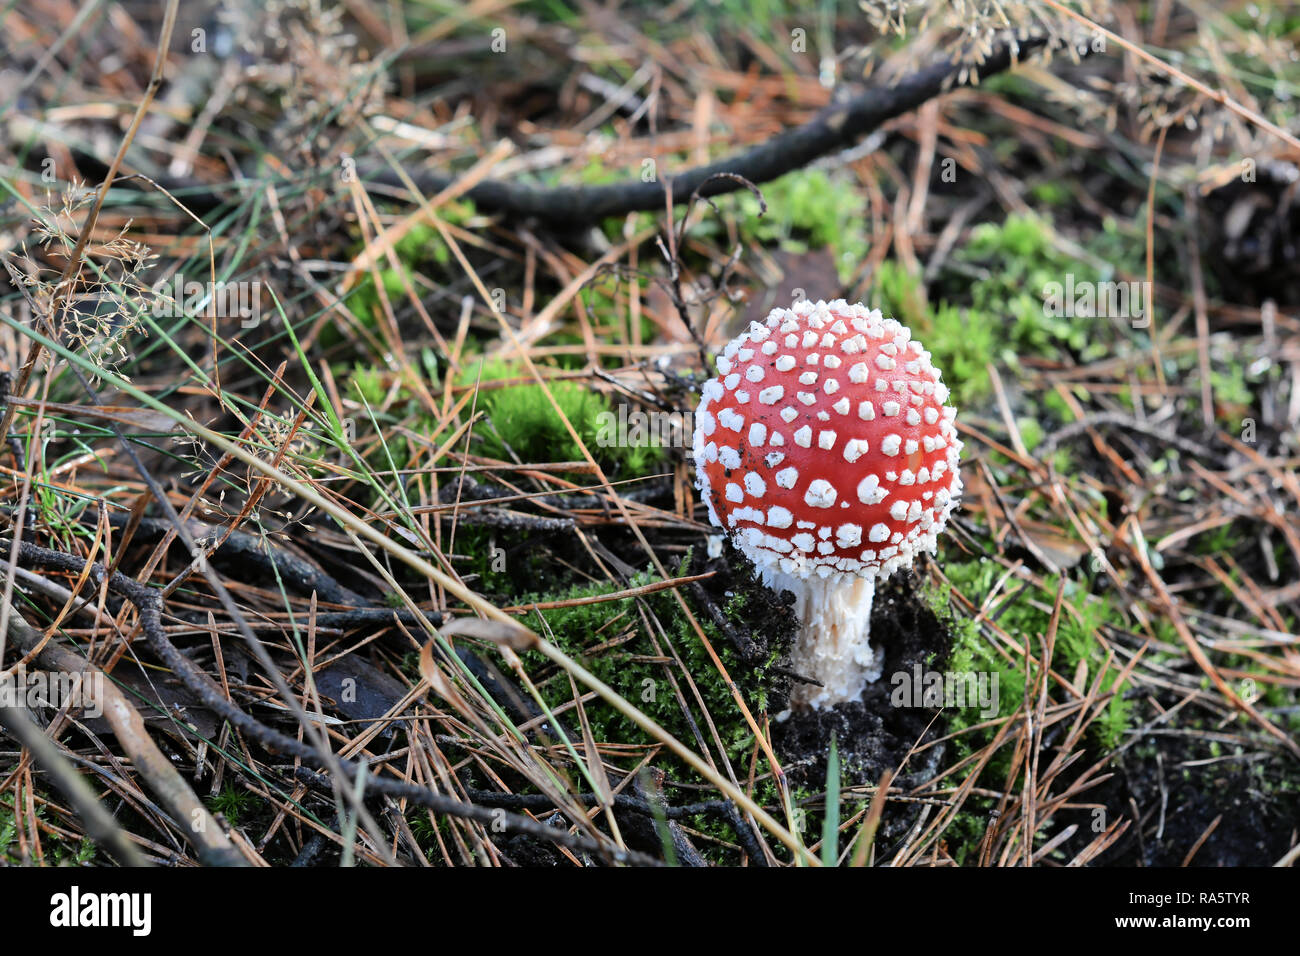 fly agaric mushroom on the forest floor - Stock Image